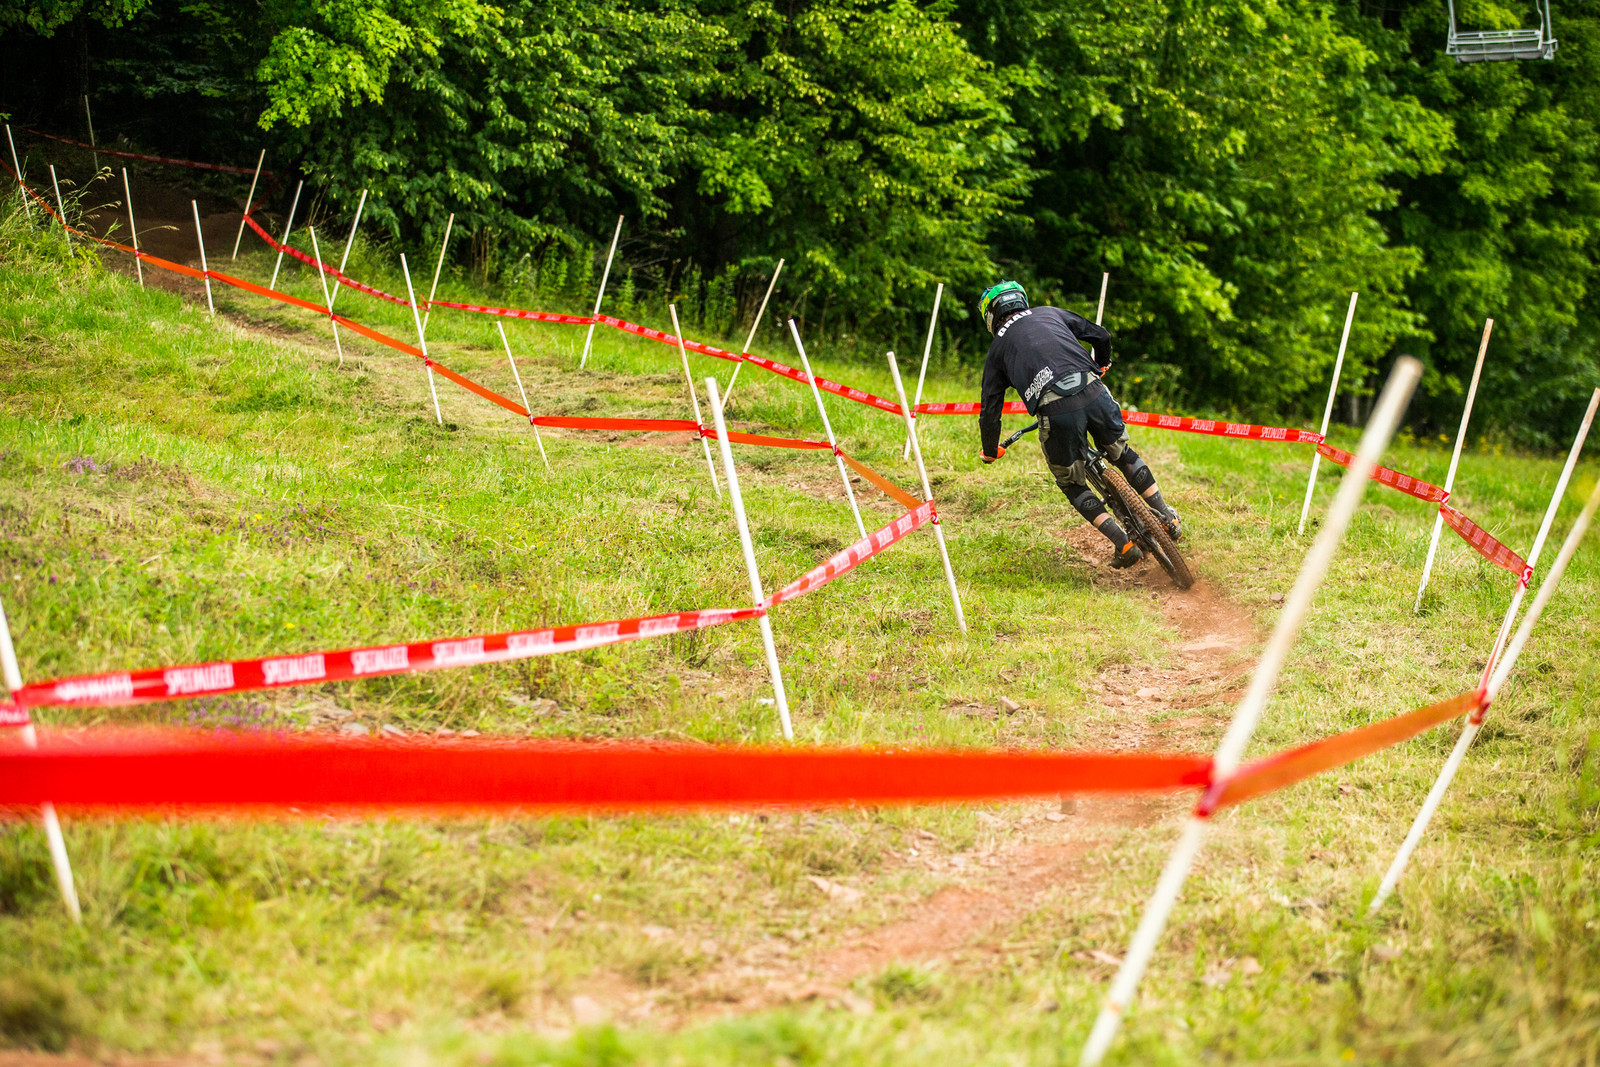 Kyle Grau using all the suspension and traction available to hit this corner flat out.